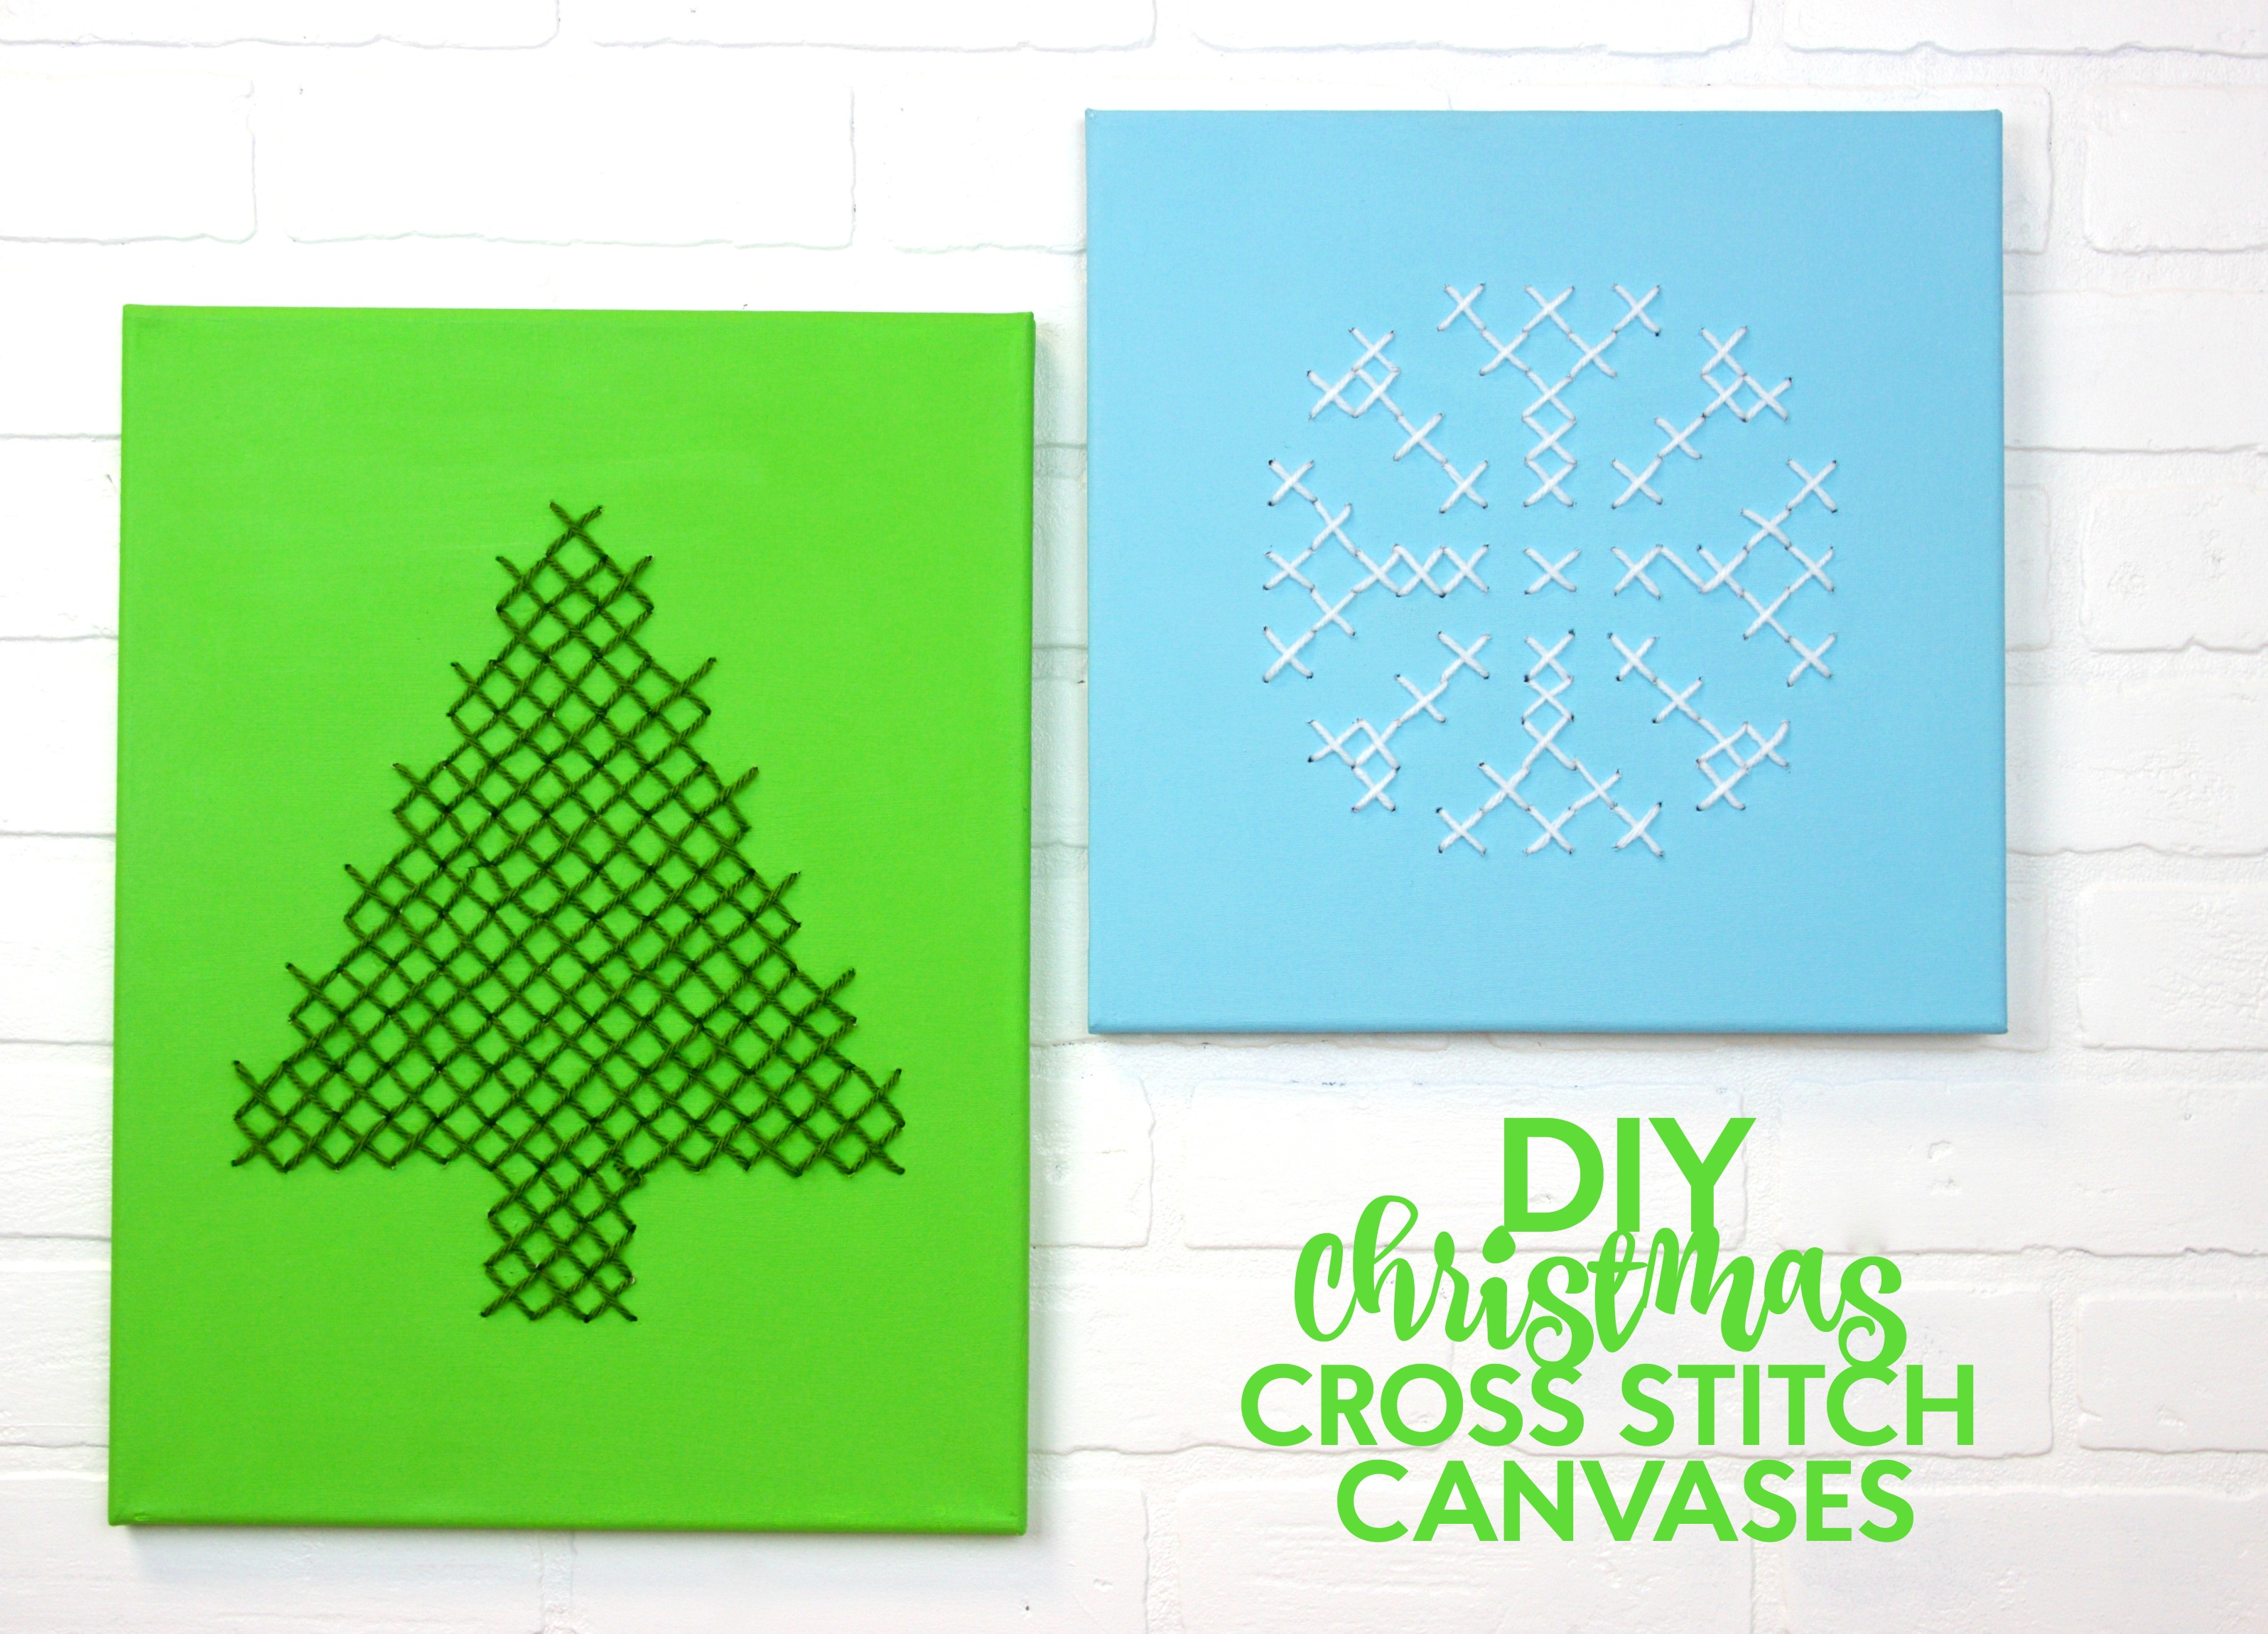 Fast diy christmas gifts with canvas